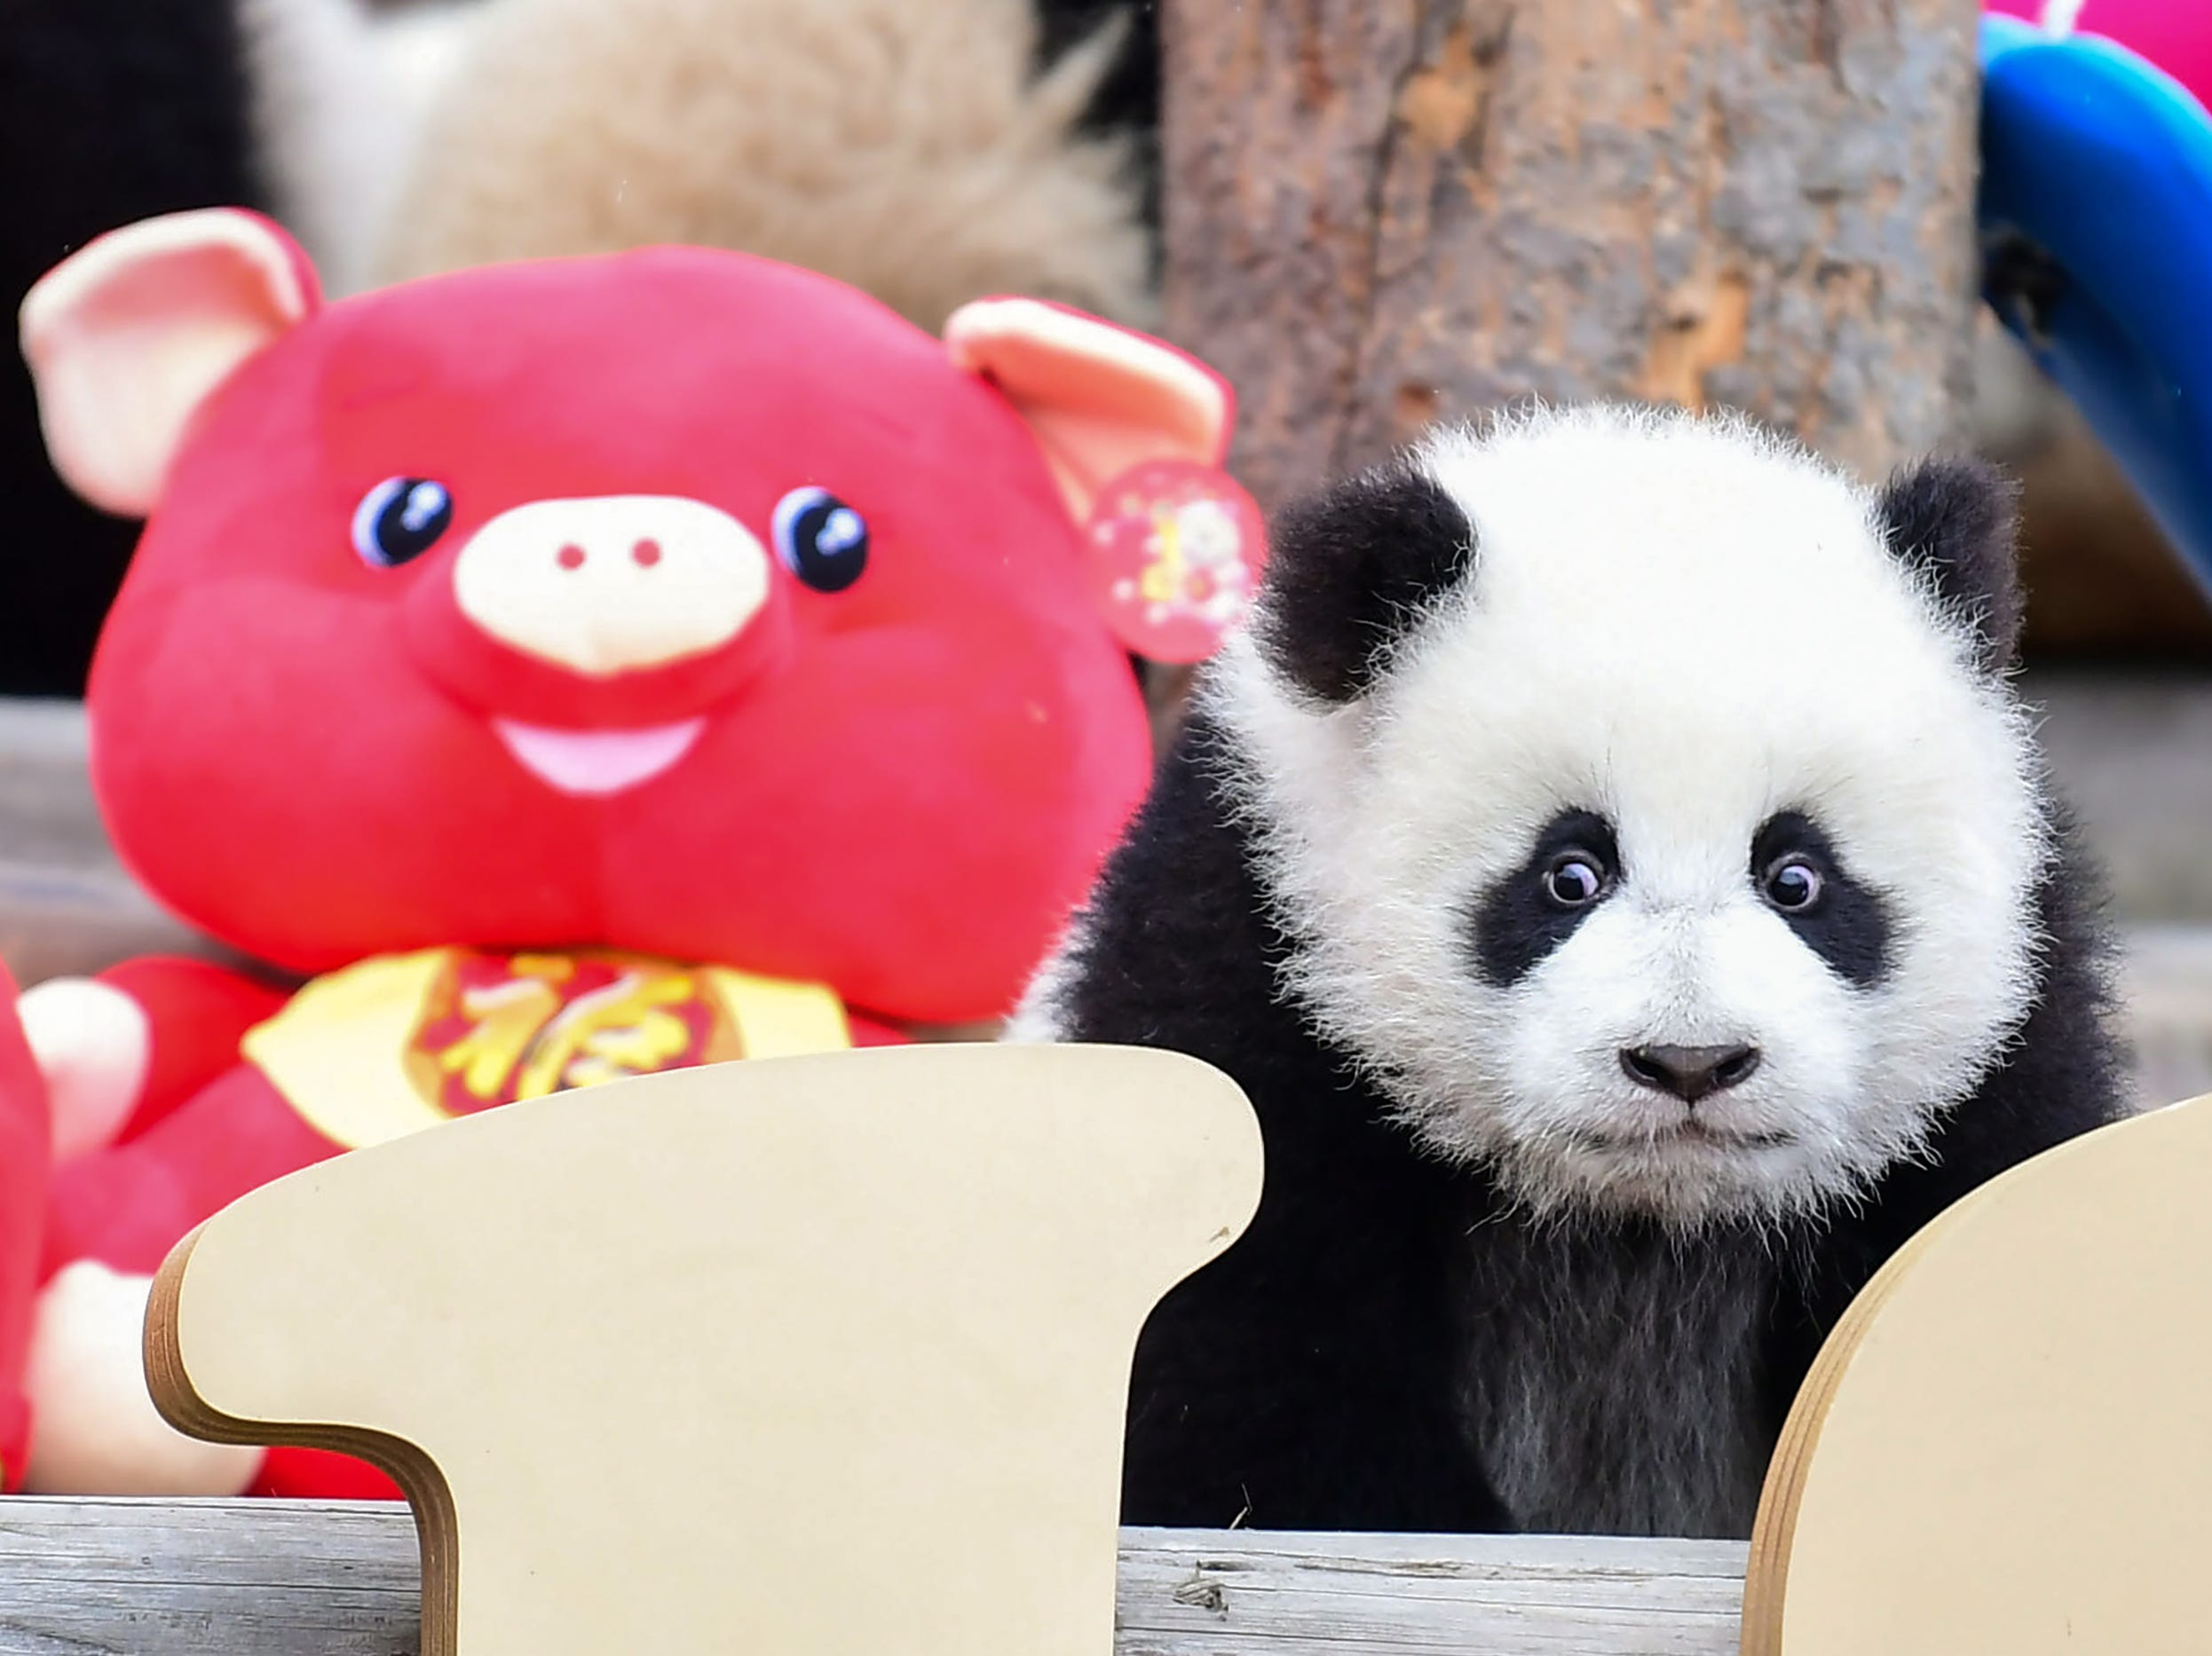 A  panda cub plays in its enclosure with Lunar New Year decorations at the Shenshuping breeding base of Wolong National Nature Reserve in Wenchuan, China's southwestern Sichuan province. - Eleven panda cubs born in 2018 were presented to the public to mark the upcoming Lunar New Year of the Pig, which starts on February 5.